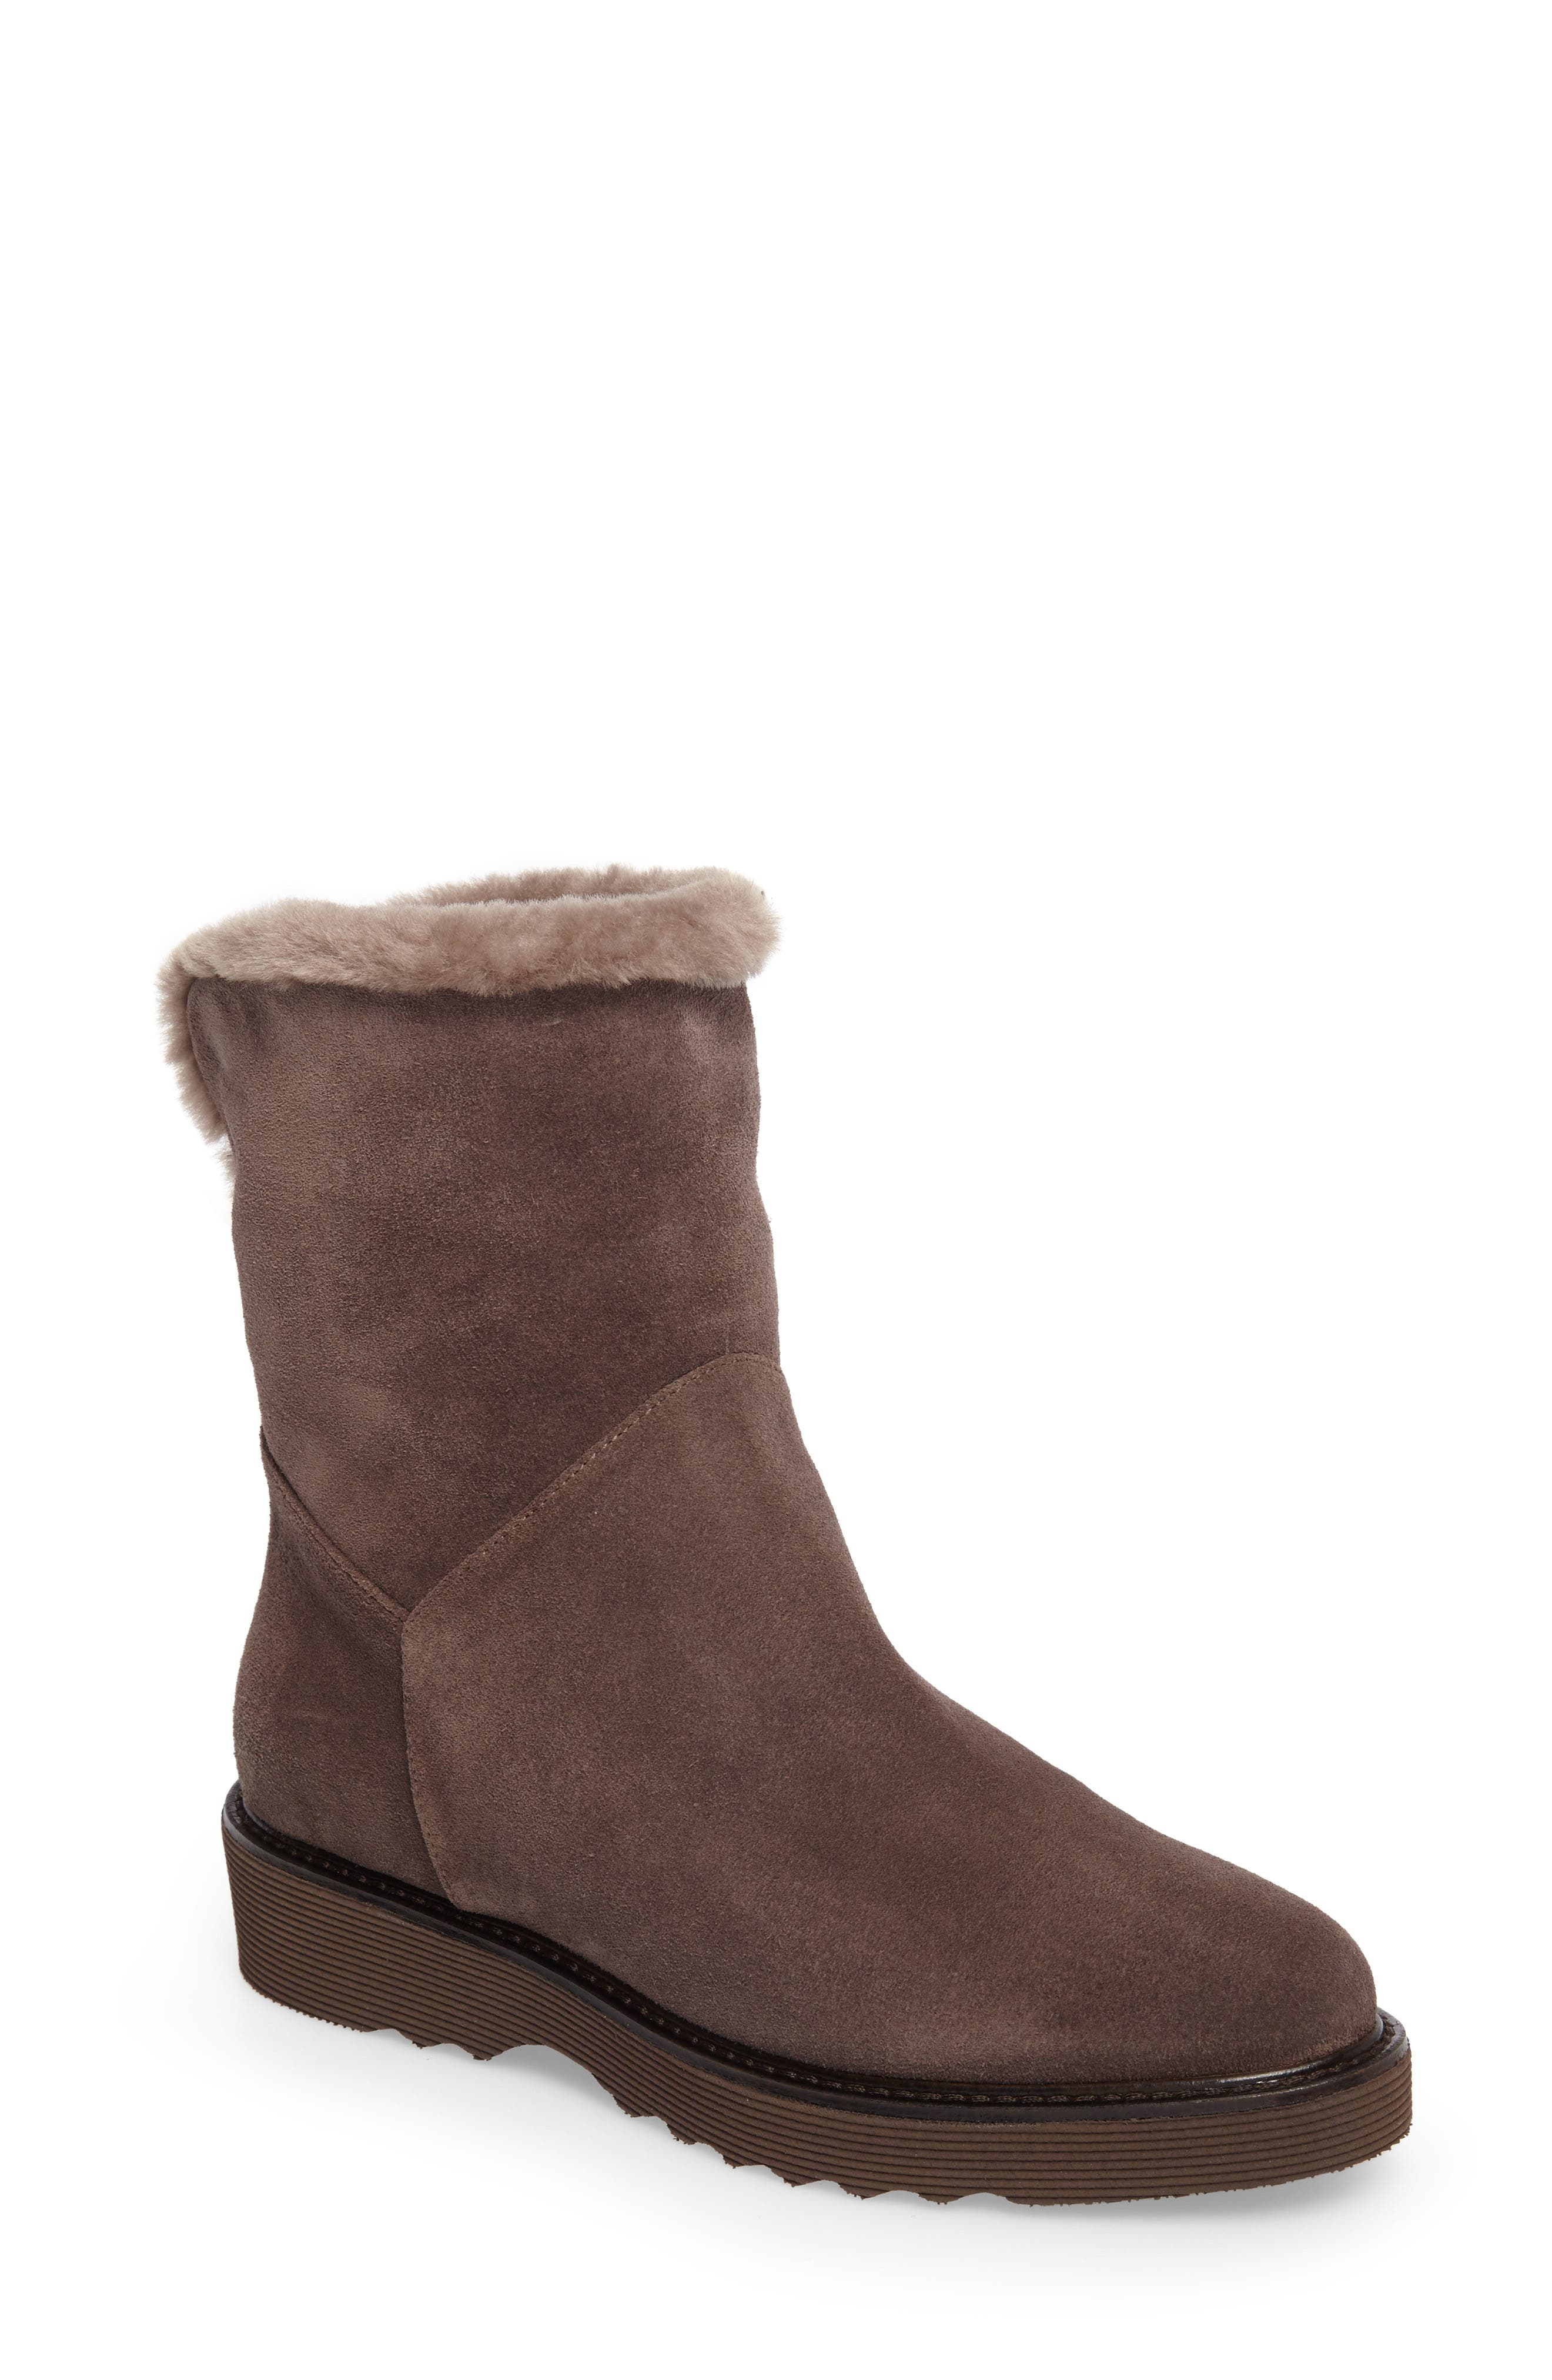 Main Image - Aquatalia Kimberly Weatherproof Genuine Shearling Bootie (Women)